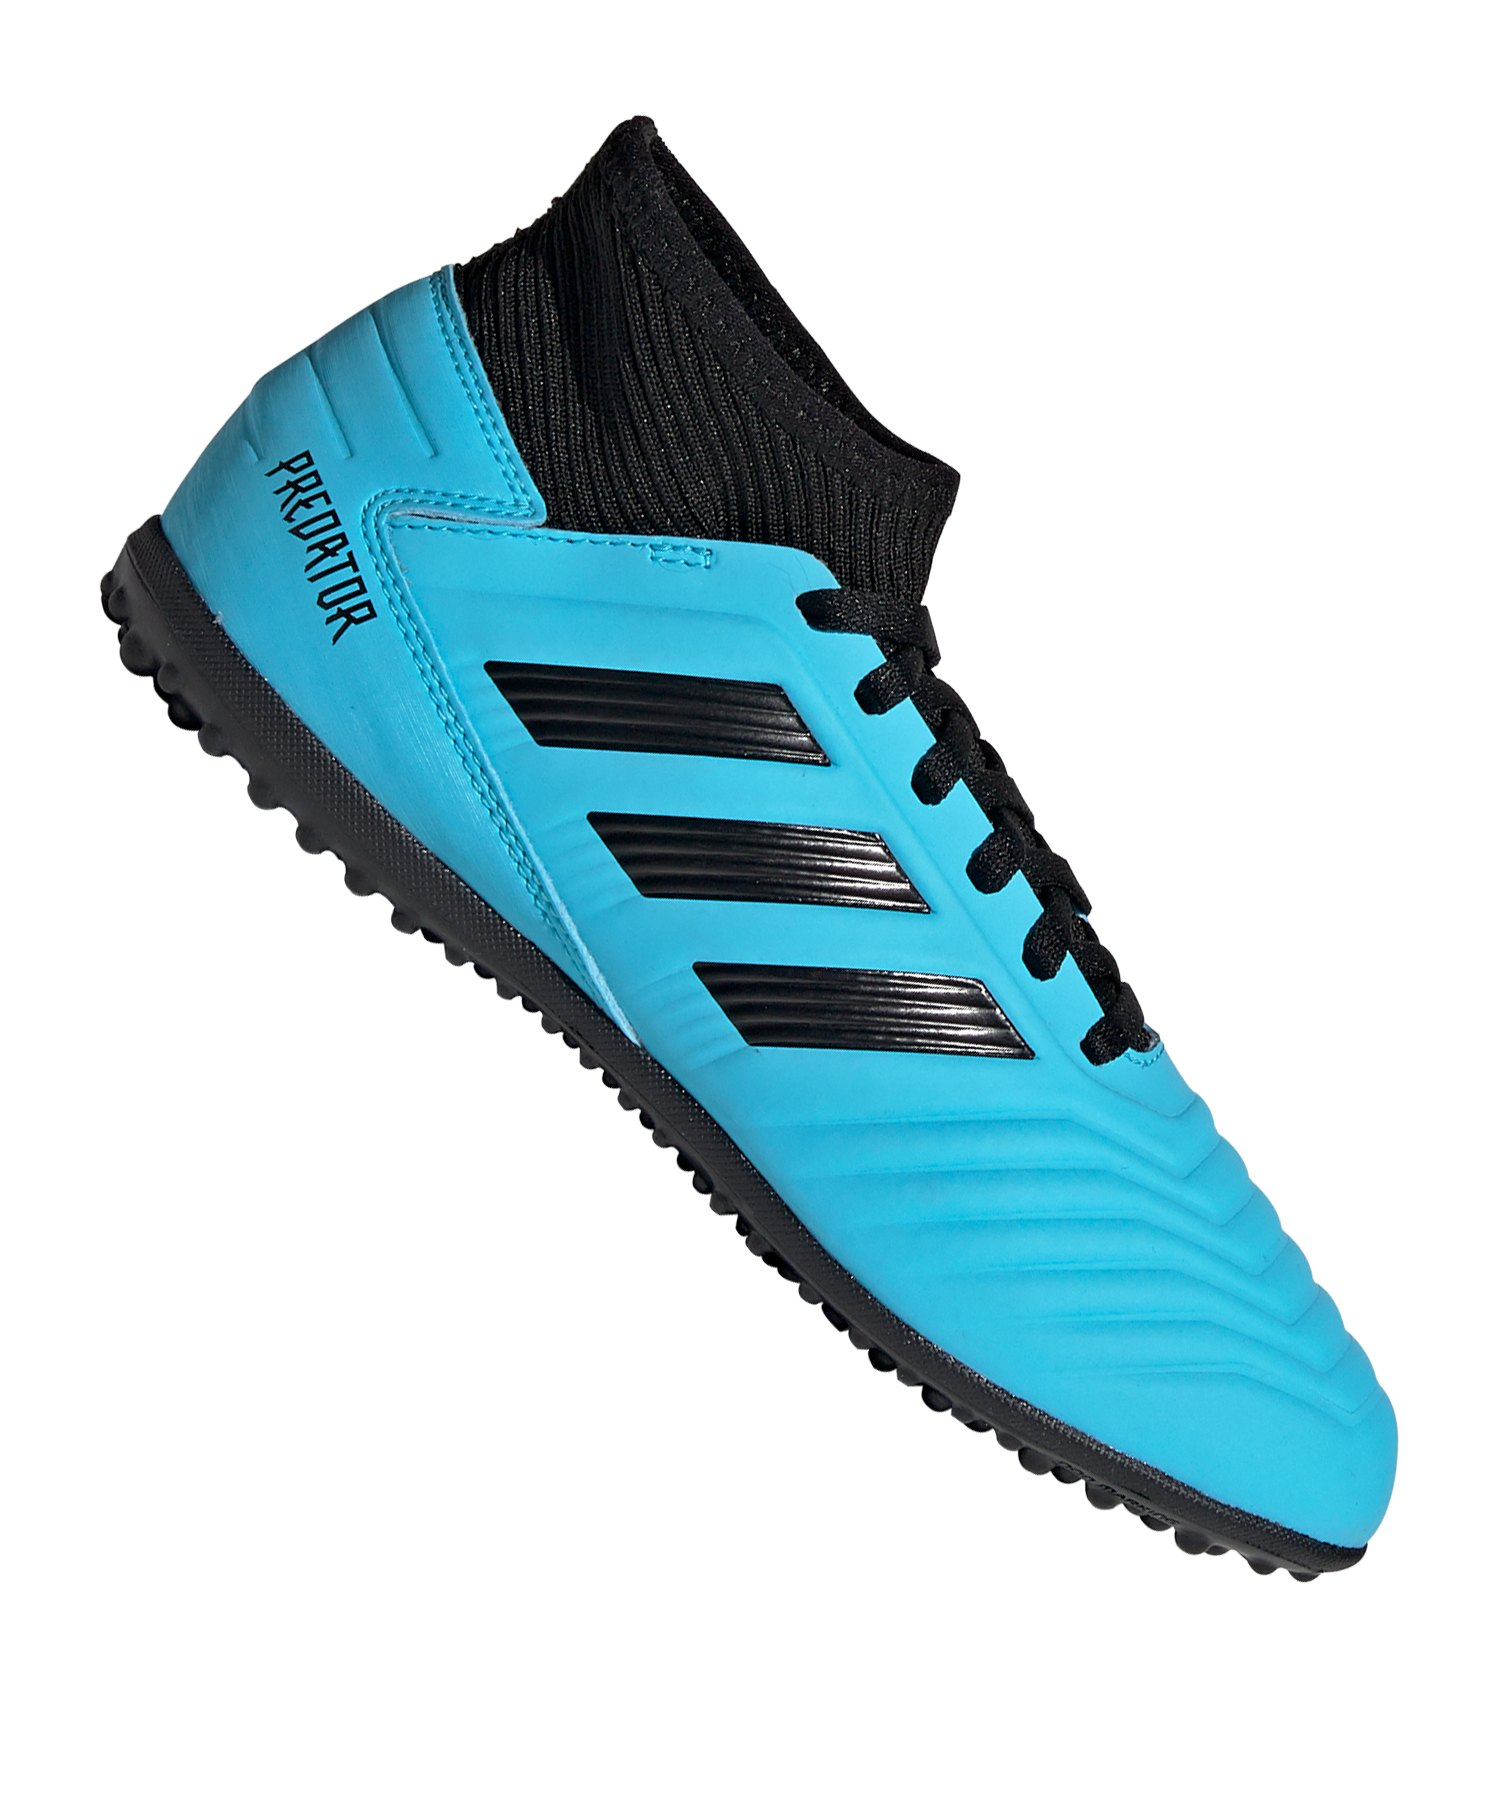 cheaper separation shoes genuine shoes Adidas